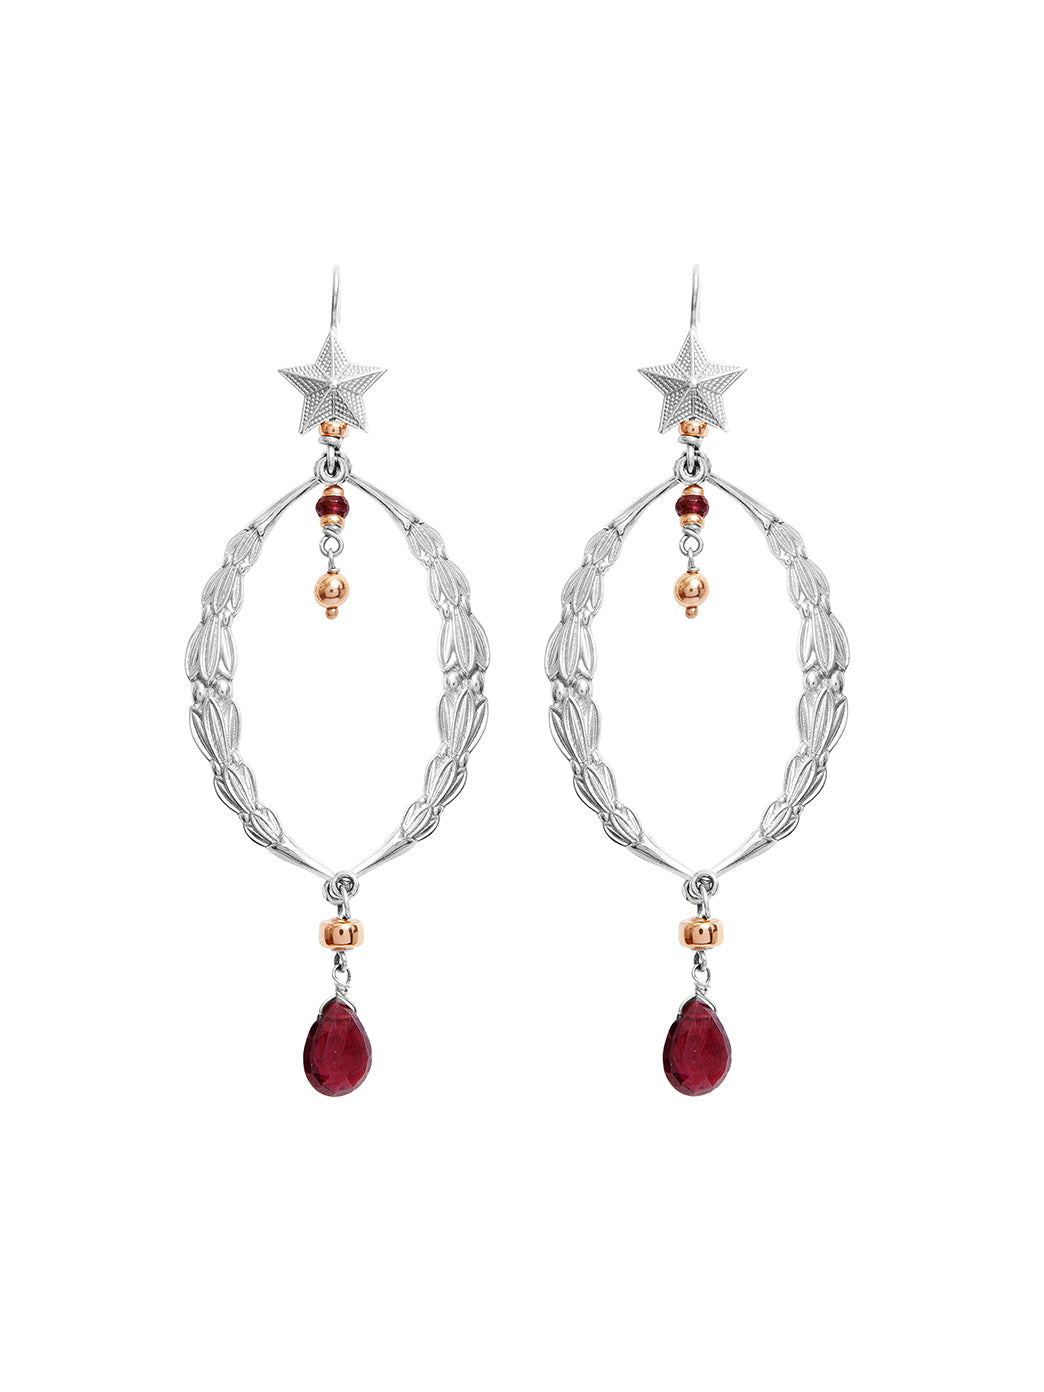 Fiorina Jewellery Magnificence Earrings